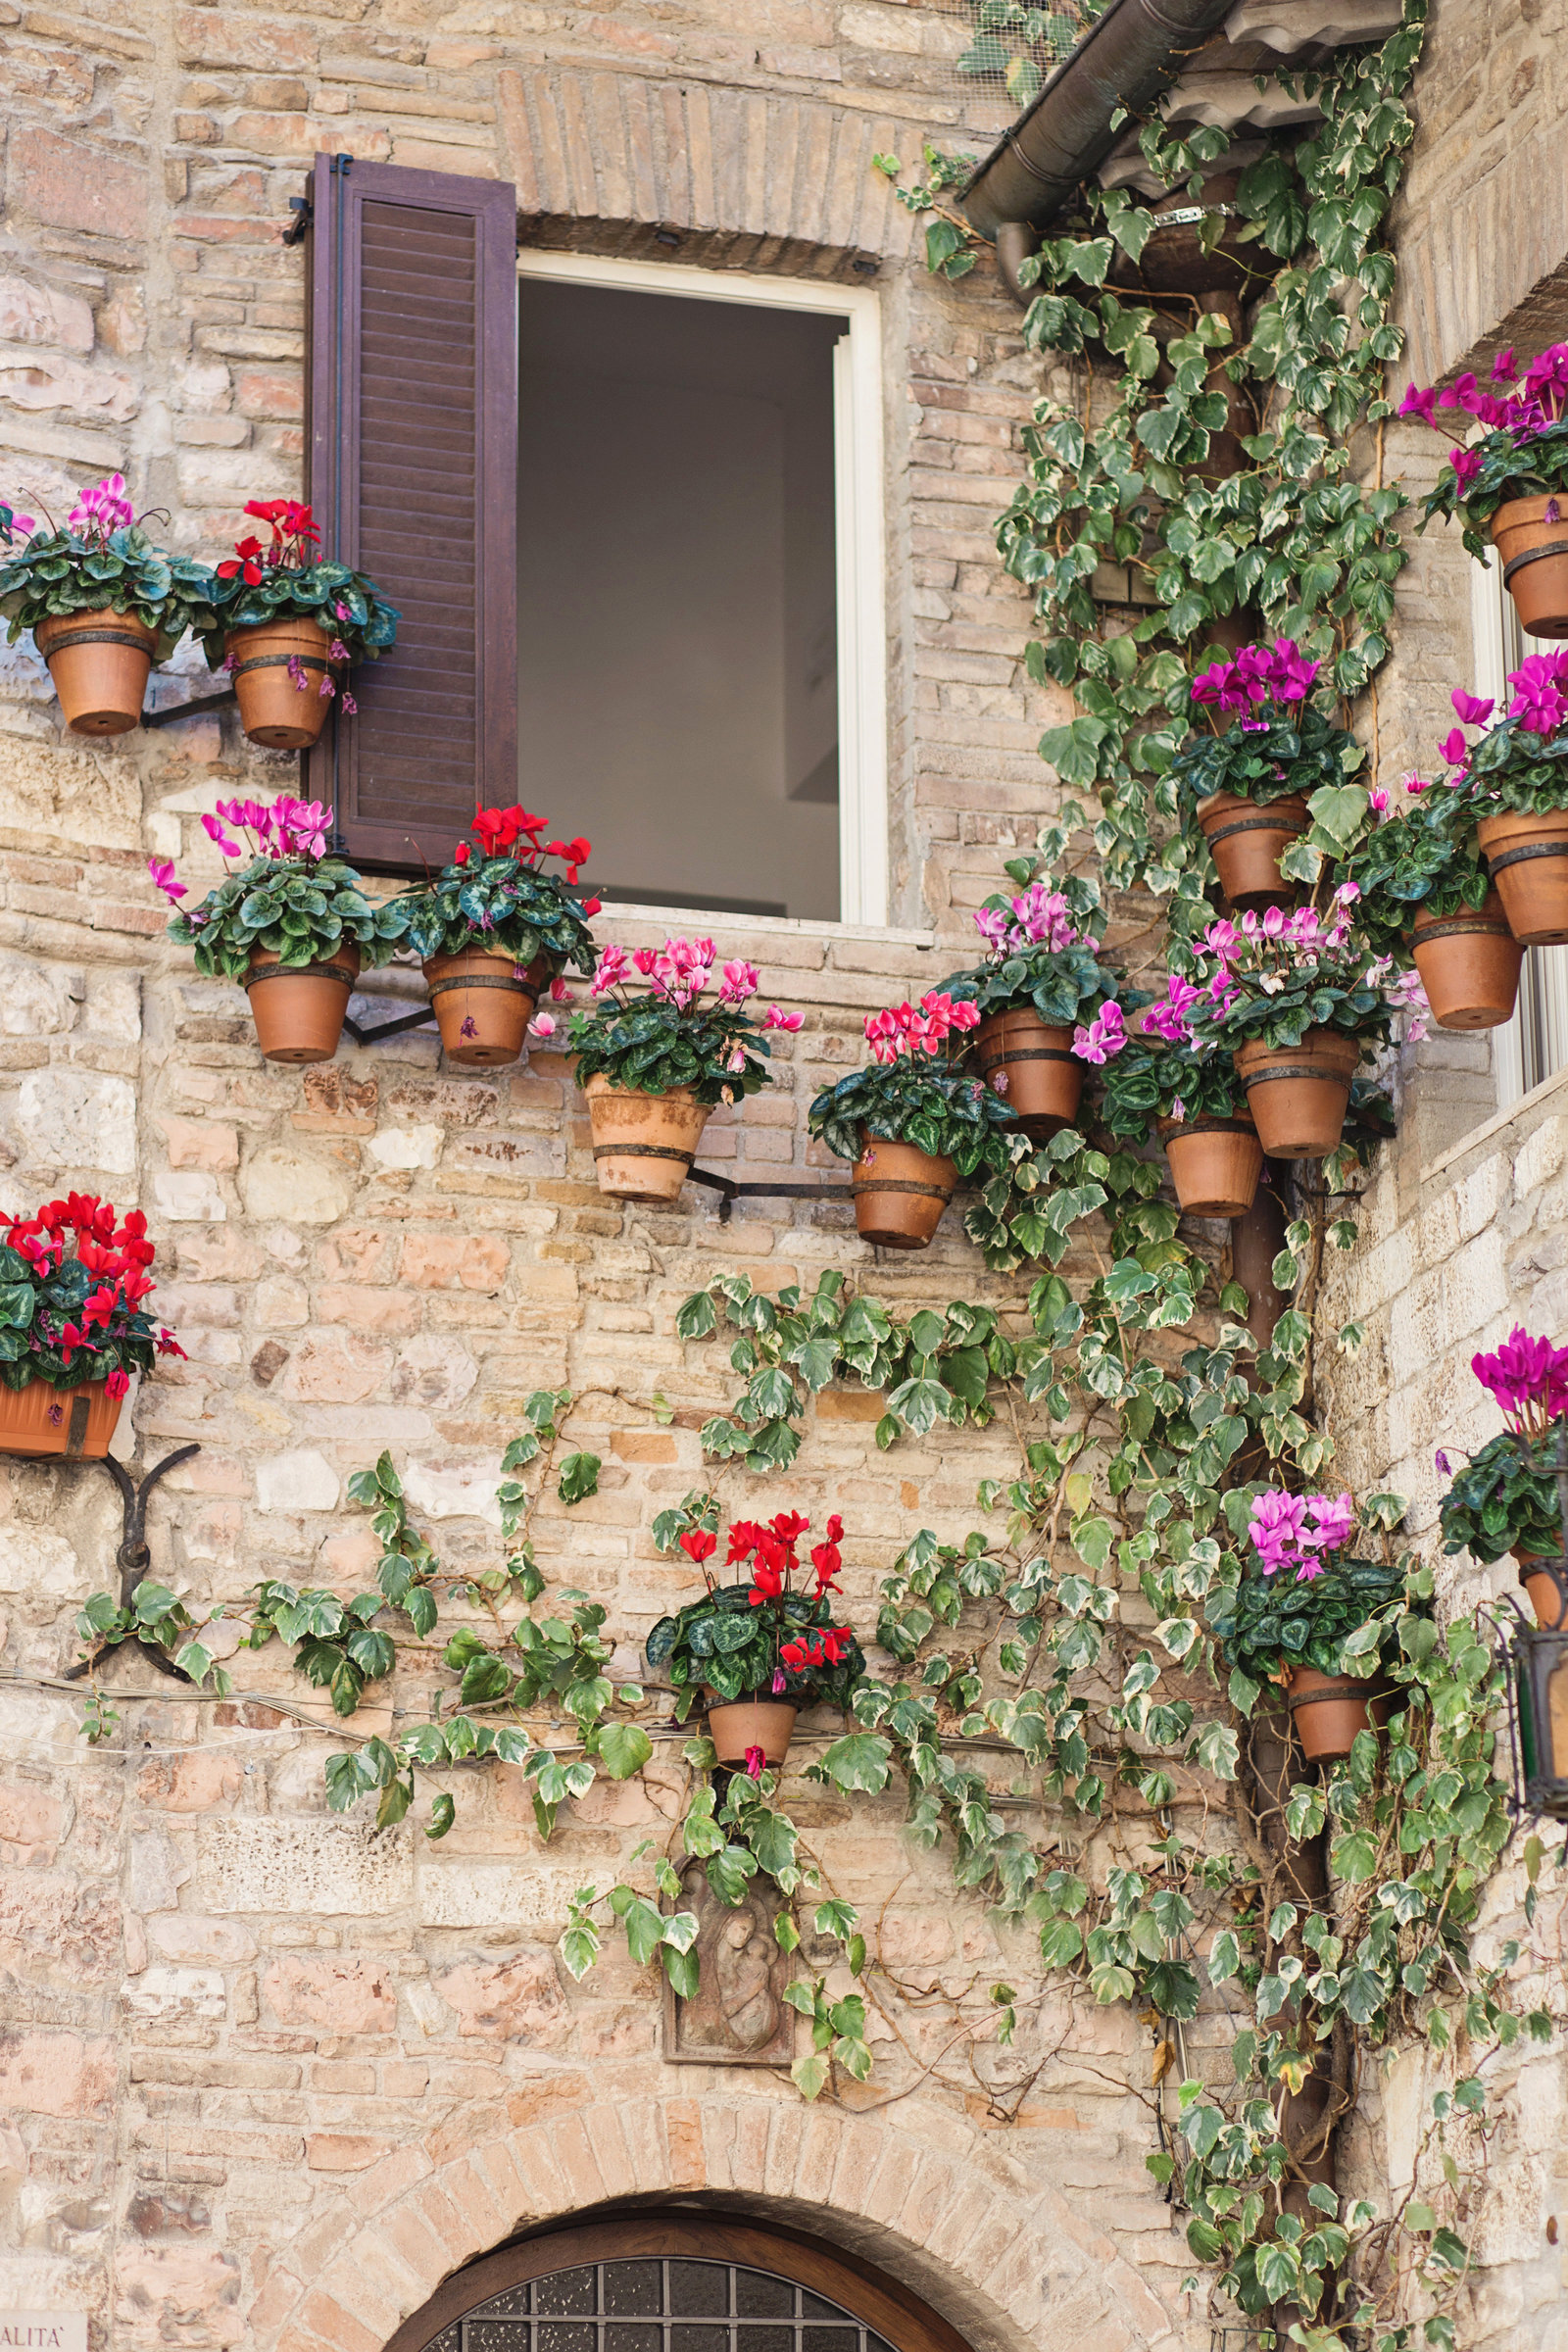 Assisi-flowers